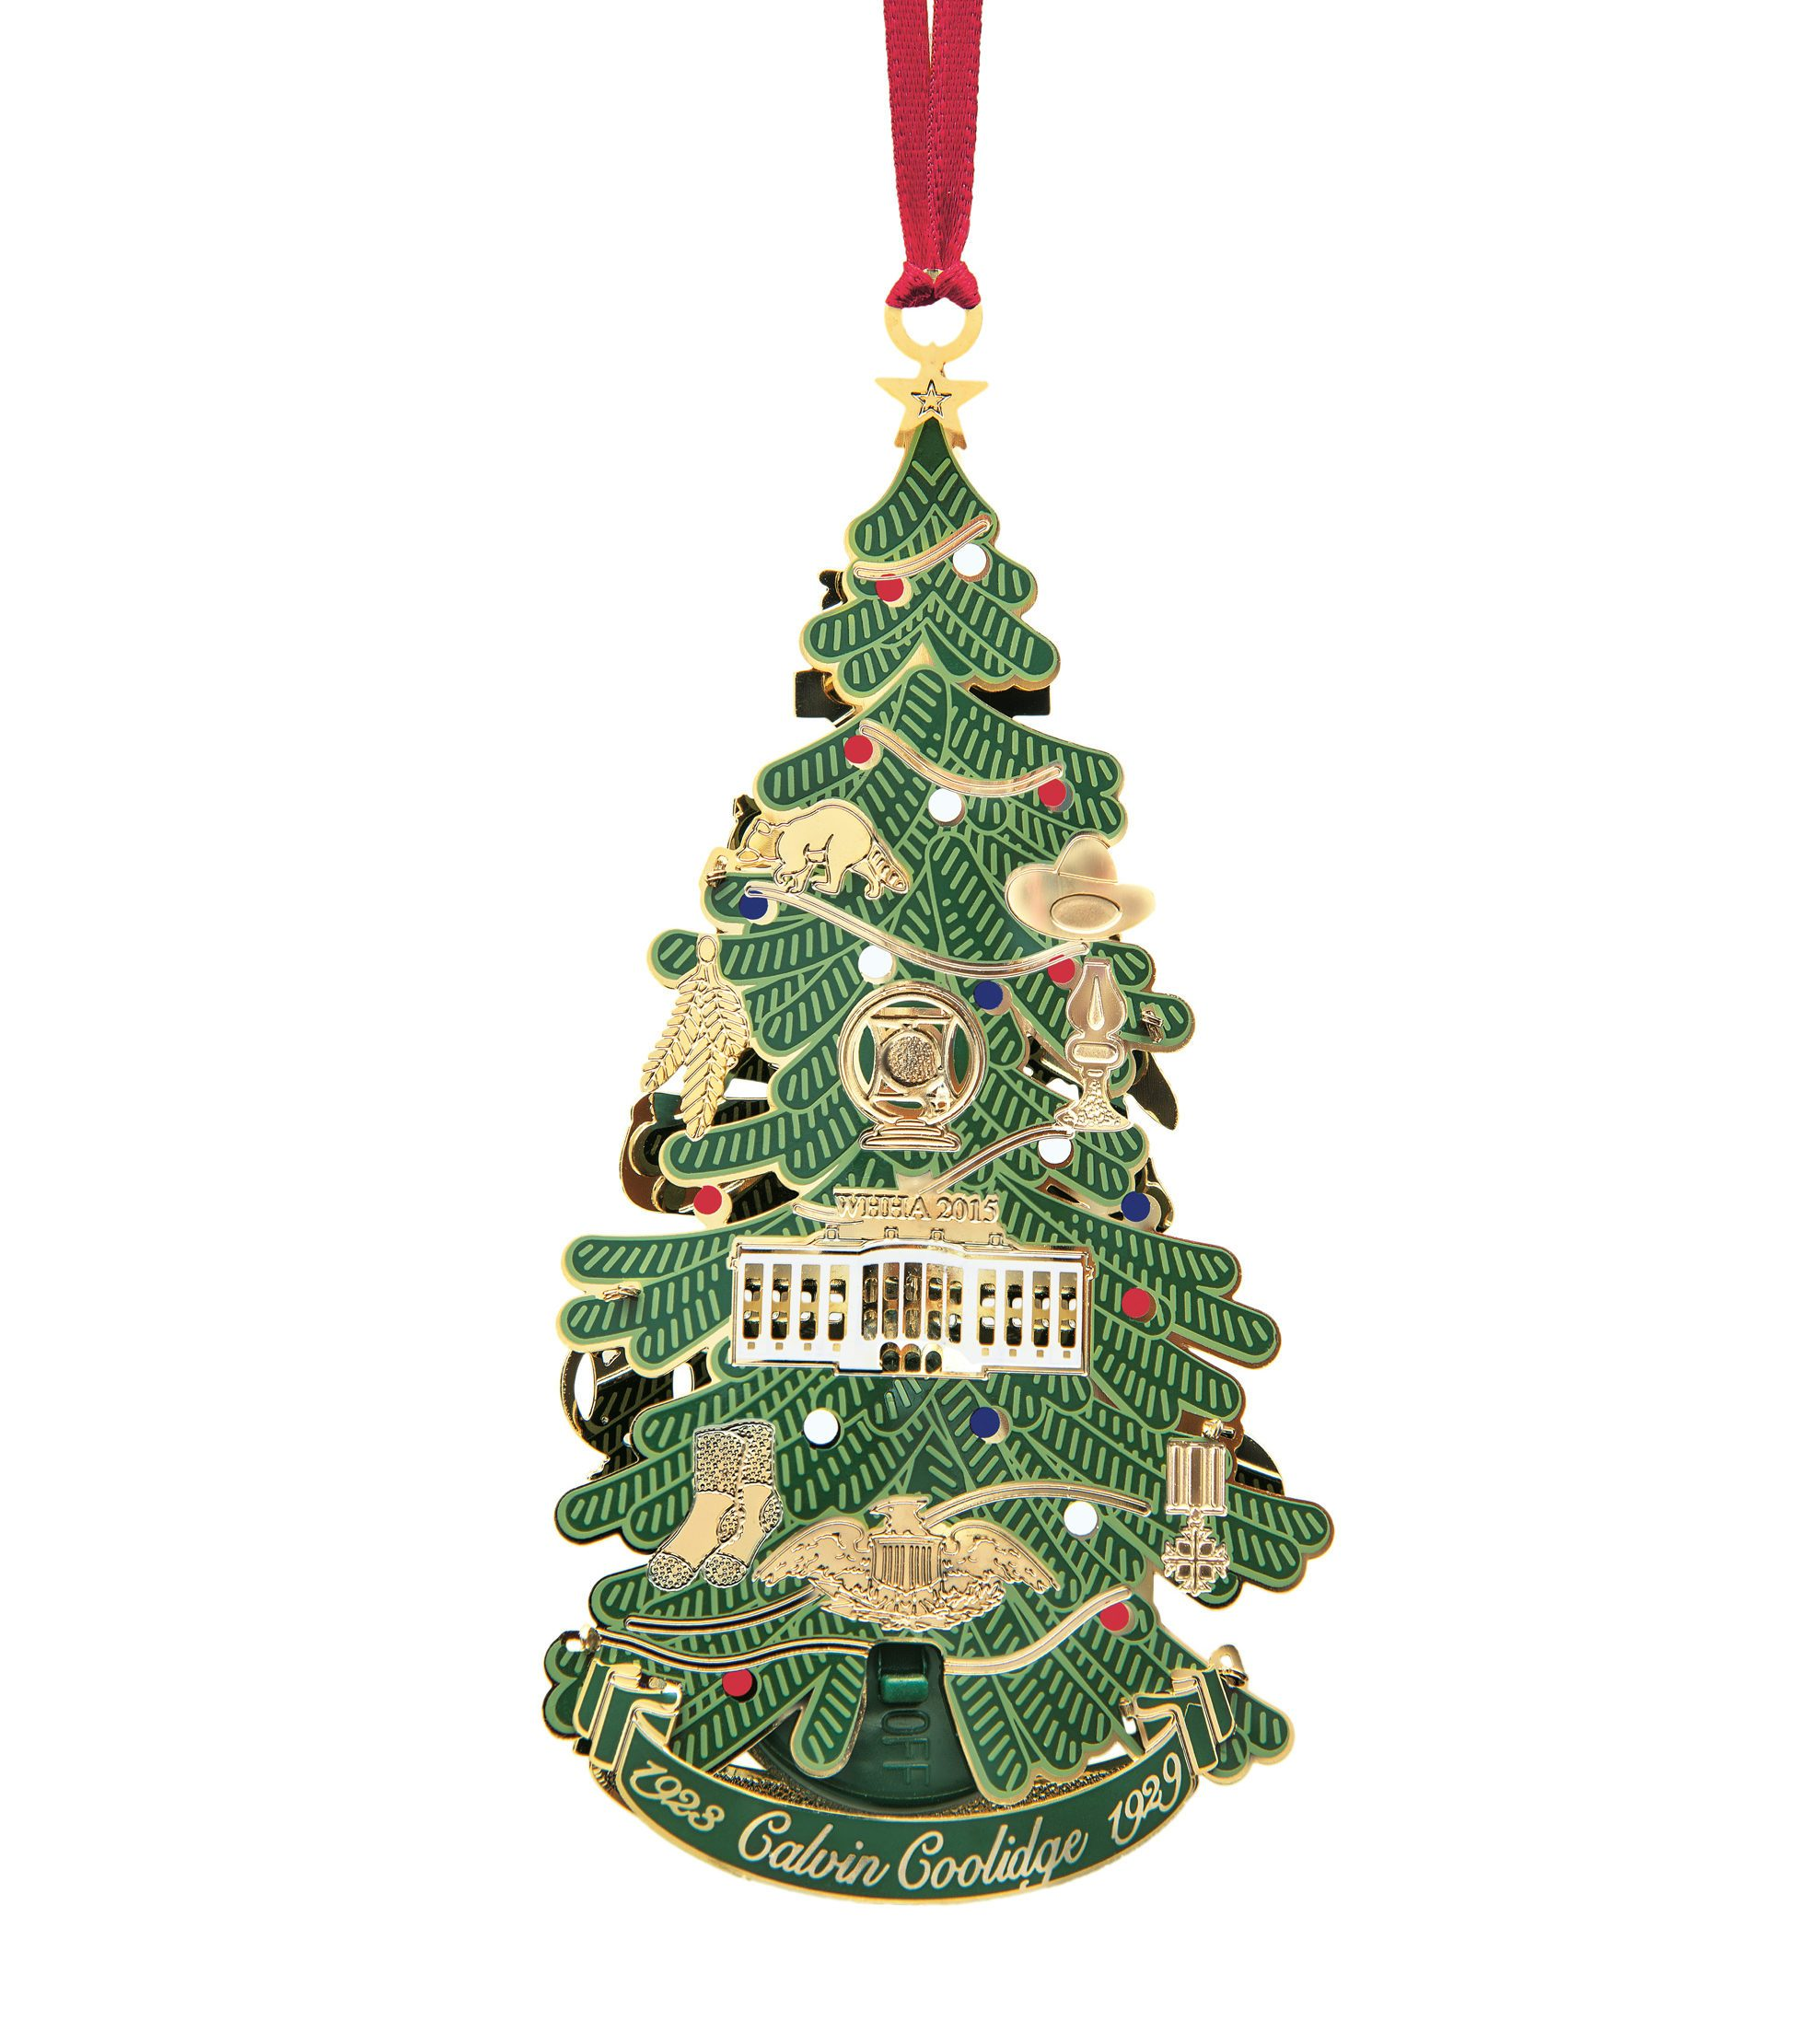 This image is the Back view (with string) of the 2015 White House Christmas Ornament that honors the administration of Calvin Coolidge, who served as the 30th President of the United States from 1923 to 1929. A depiction of the first National Christmas tree, it features ornaments representing the events of Coolidge's life and presidency. On Christmas Eve in 1923 President Coolidge lit strings of more than 2,500 electric bulbs on the first National Christmas Tree, an annual tradition that continues to this day. In honor of this, the ornament illuminates from a light inside the tree.